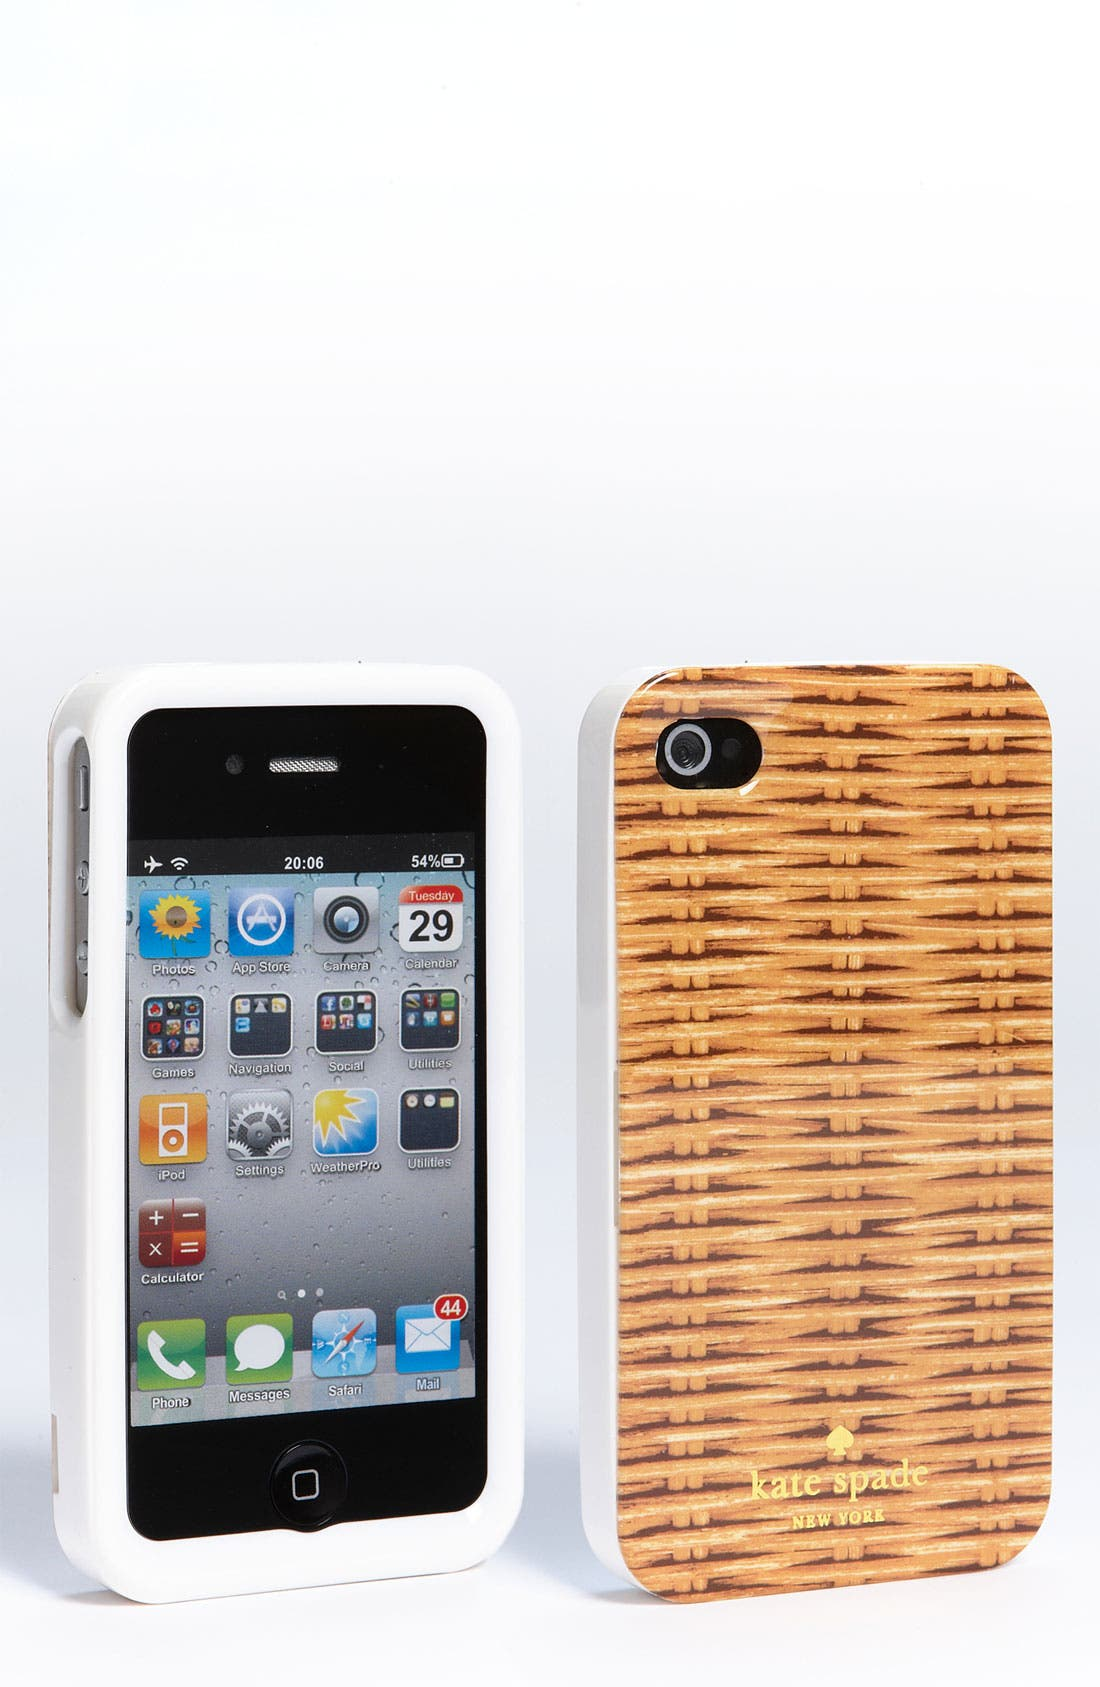 Main Image - kate spade new york 'wicker print' iPhone 4 & 4S case